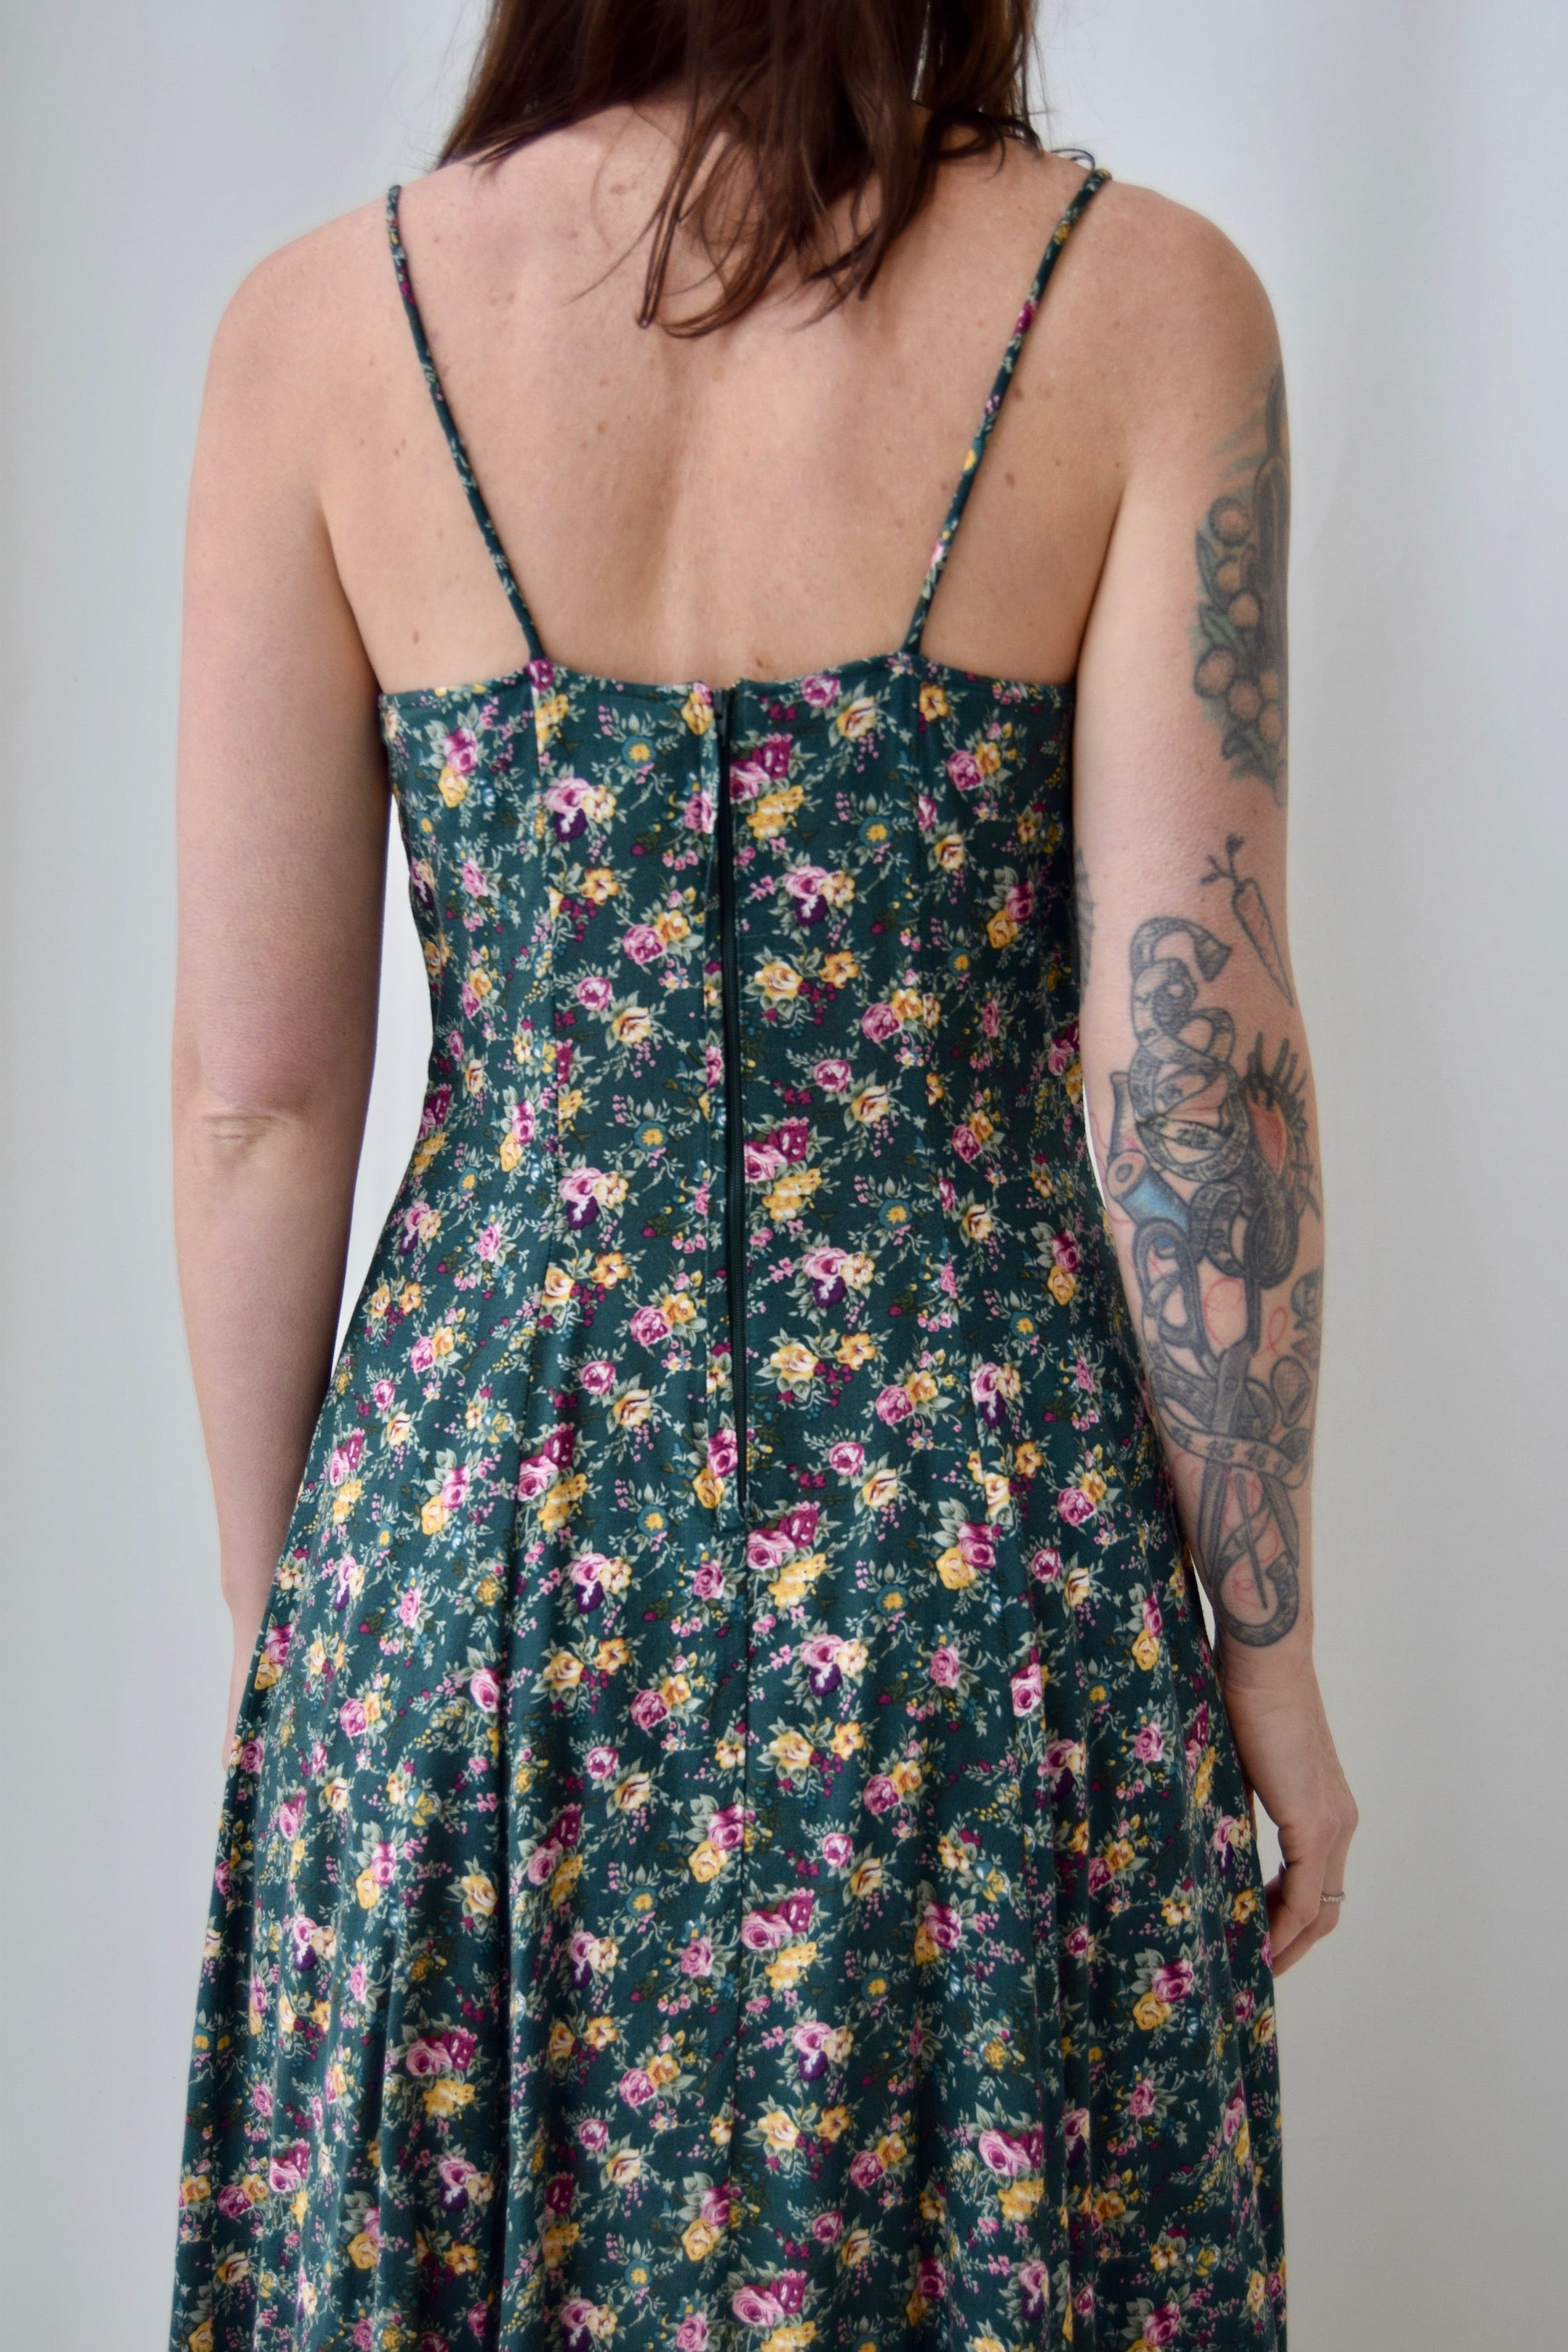 90's Forest Garden Rayon Dress